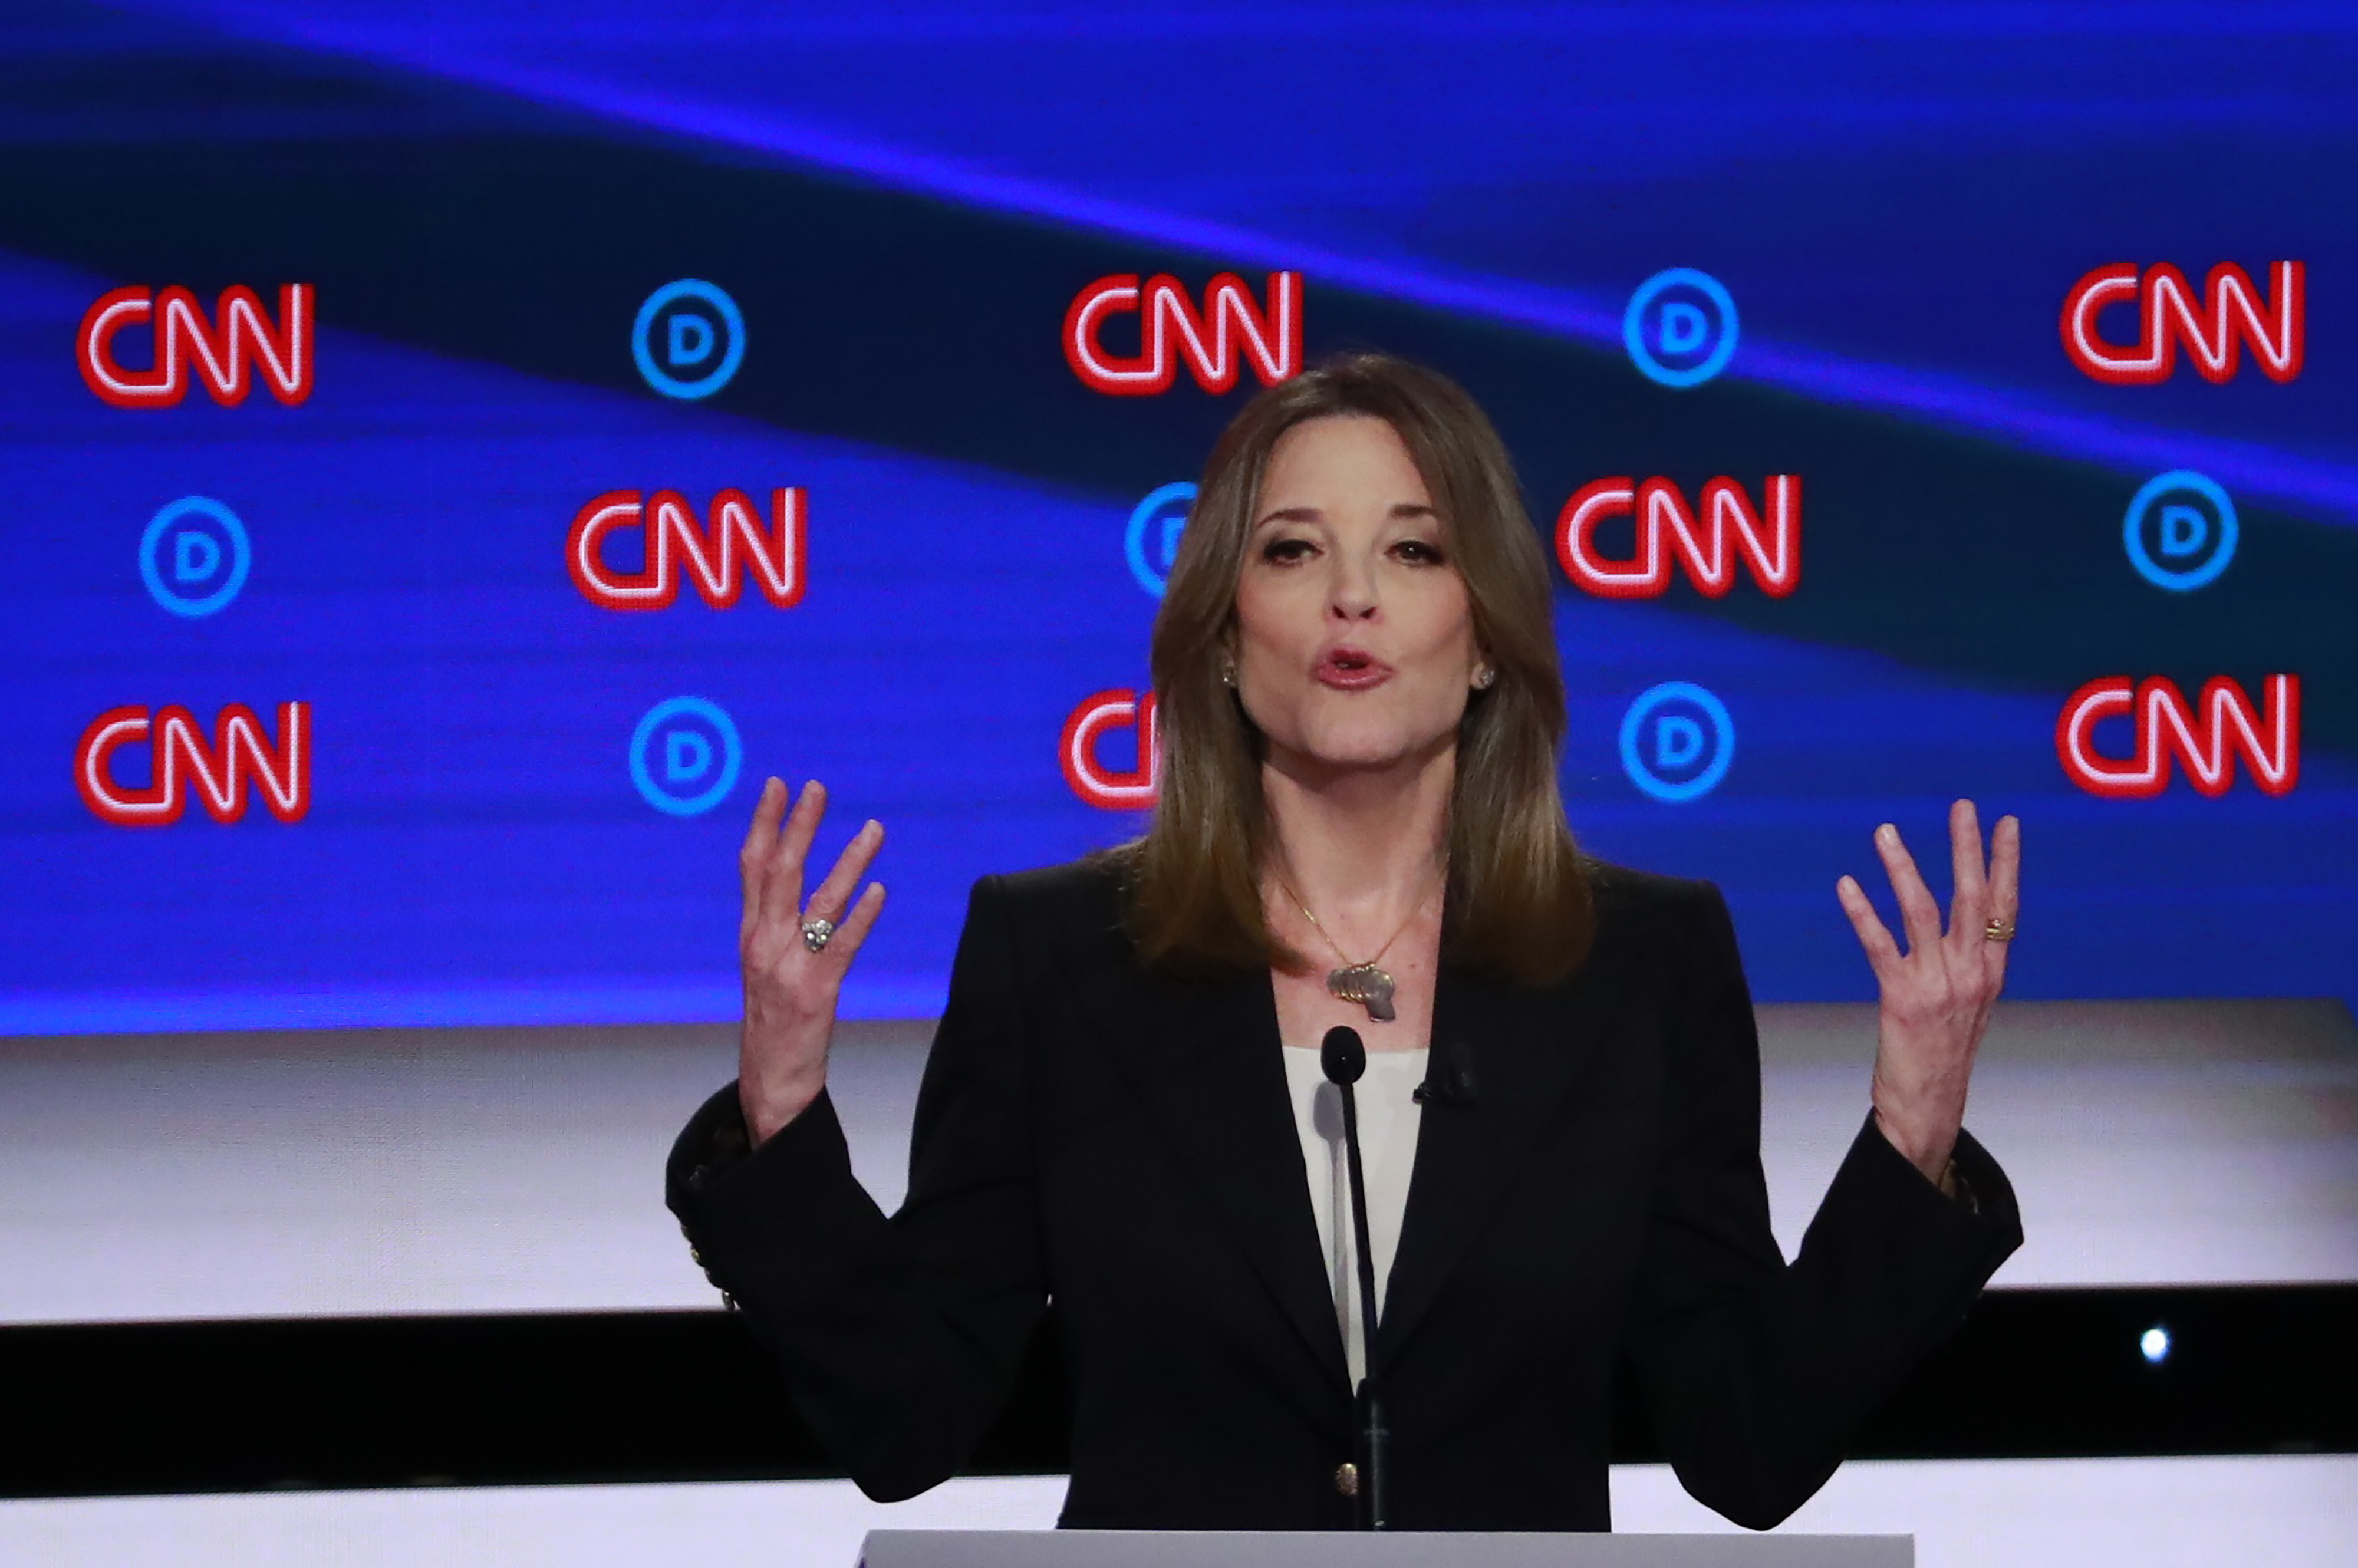 Candidate author Marianne Williamson gestures during the first night of the second 2020 Democratic U.S. presidential debate in Detroit, Michigan, July 30, 2019. (Photo: REUTERS/Lucas Jackson)